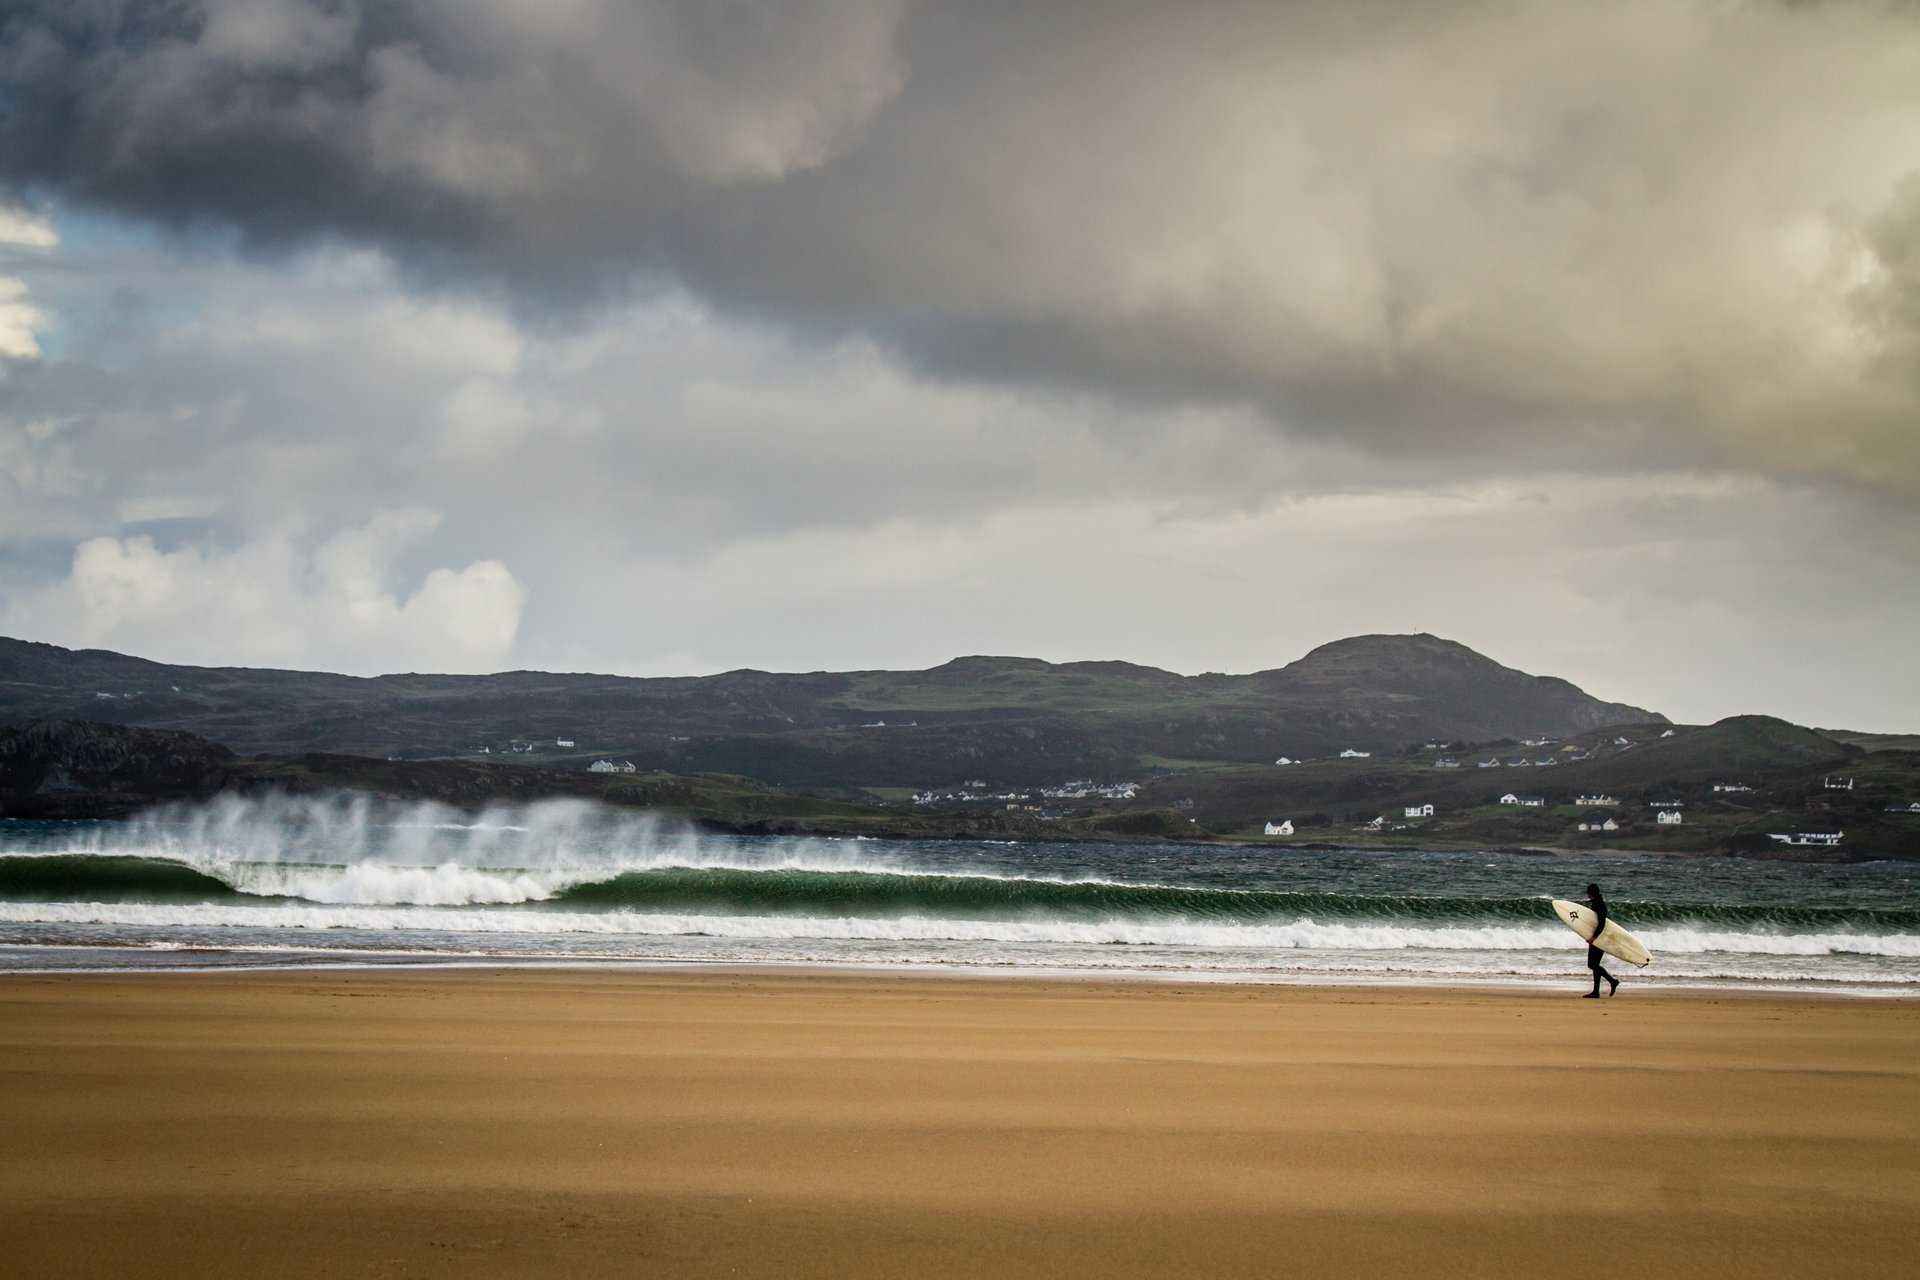 Maura Tilbury Photography's photo of Dunfanaghy